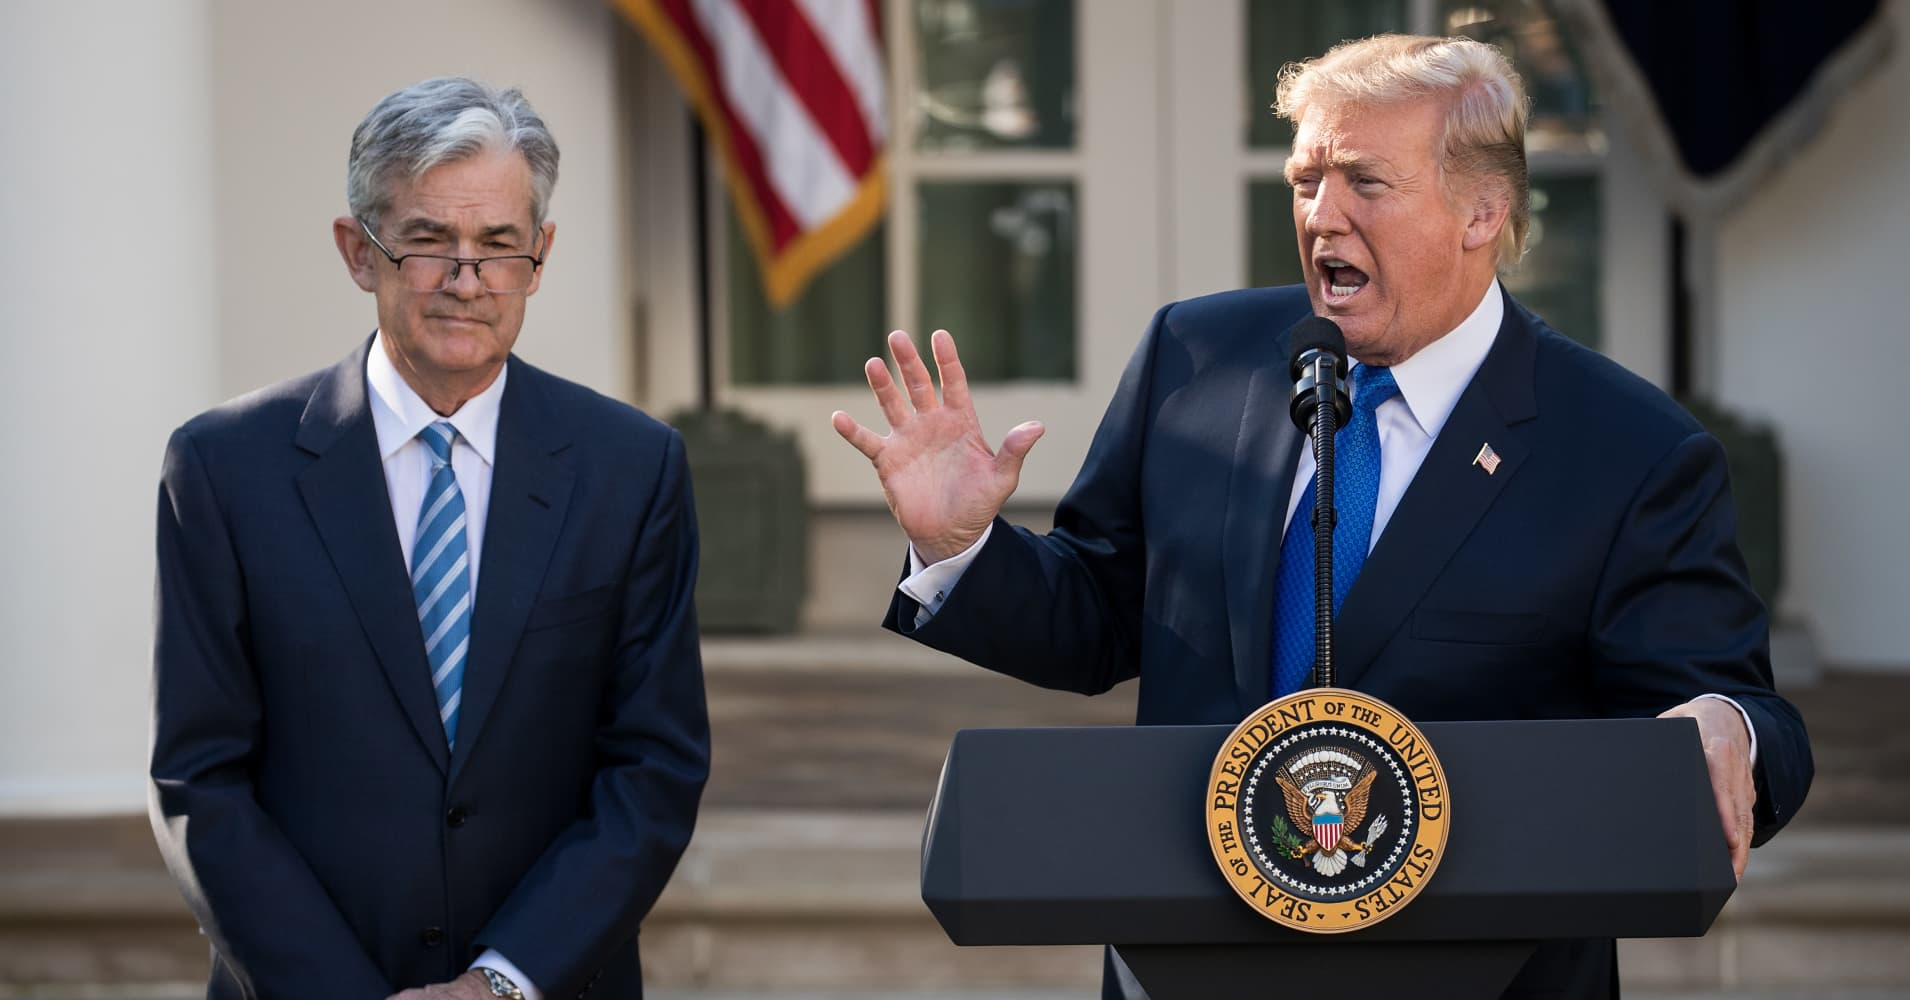 Trump's attacks on Jerome Powell are justified, James Bianco says